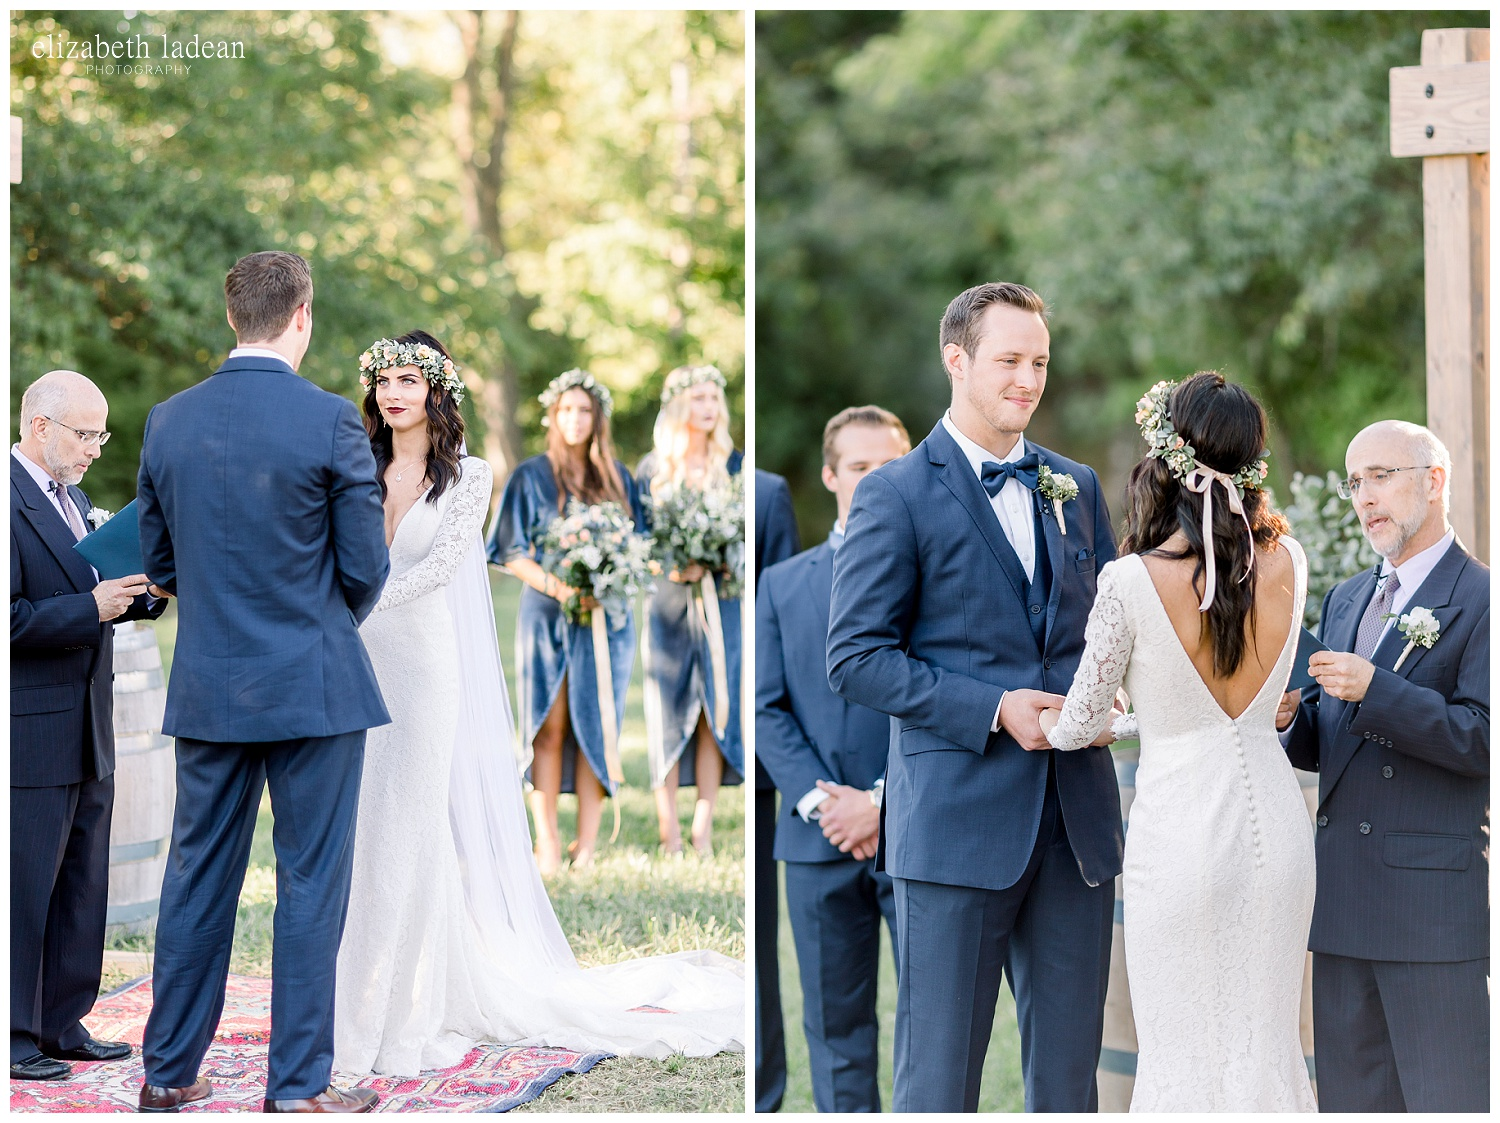 Willow-Creek-Blush-and-Blues-Outdoor-Wedding-Photography-S+Z2018-elizabeth-ladean-photography-photo_0574.jpg